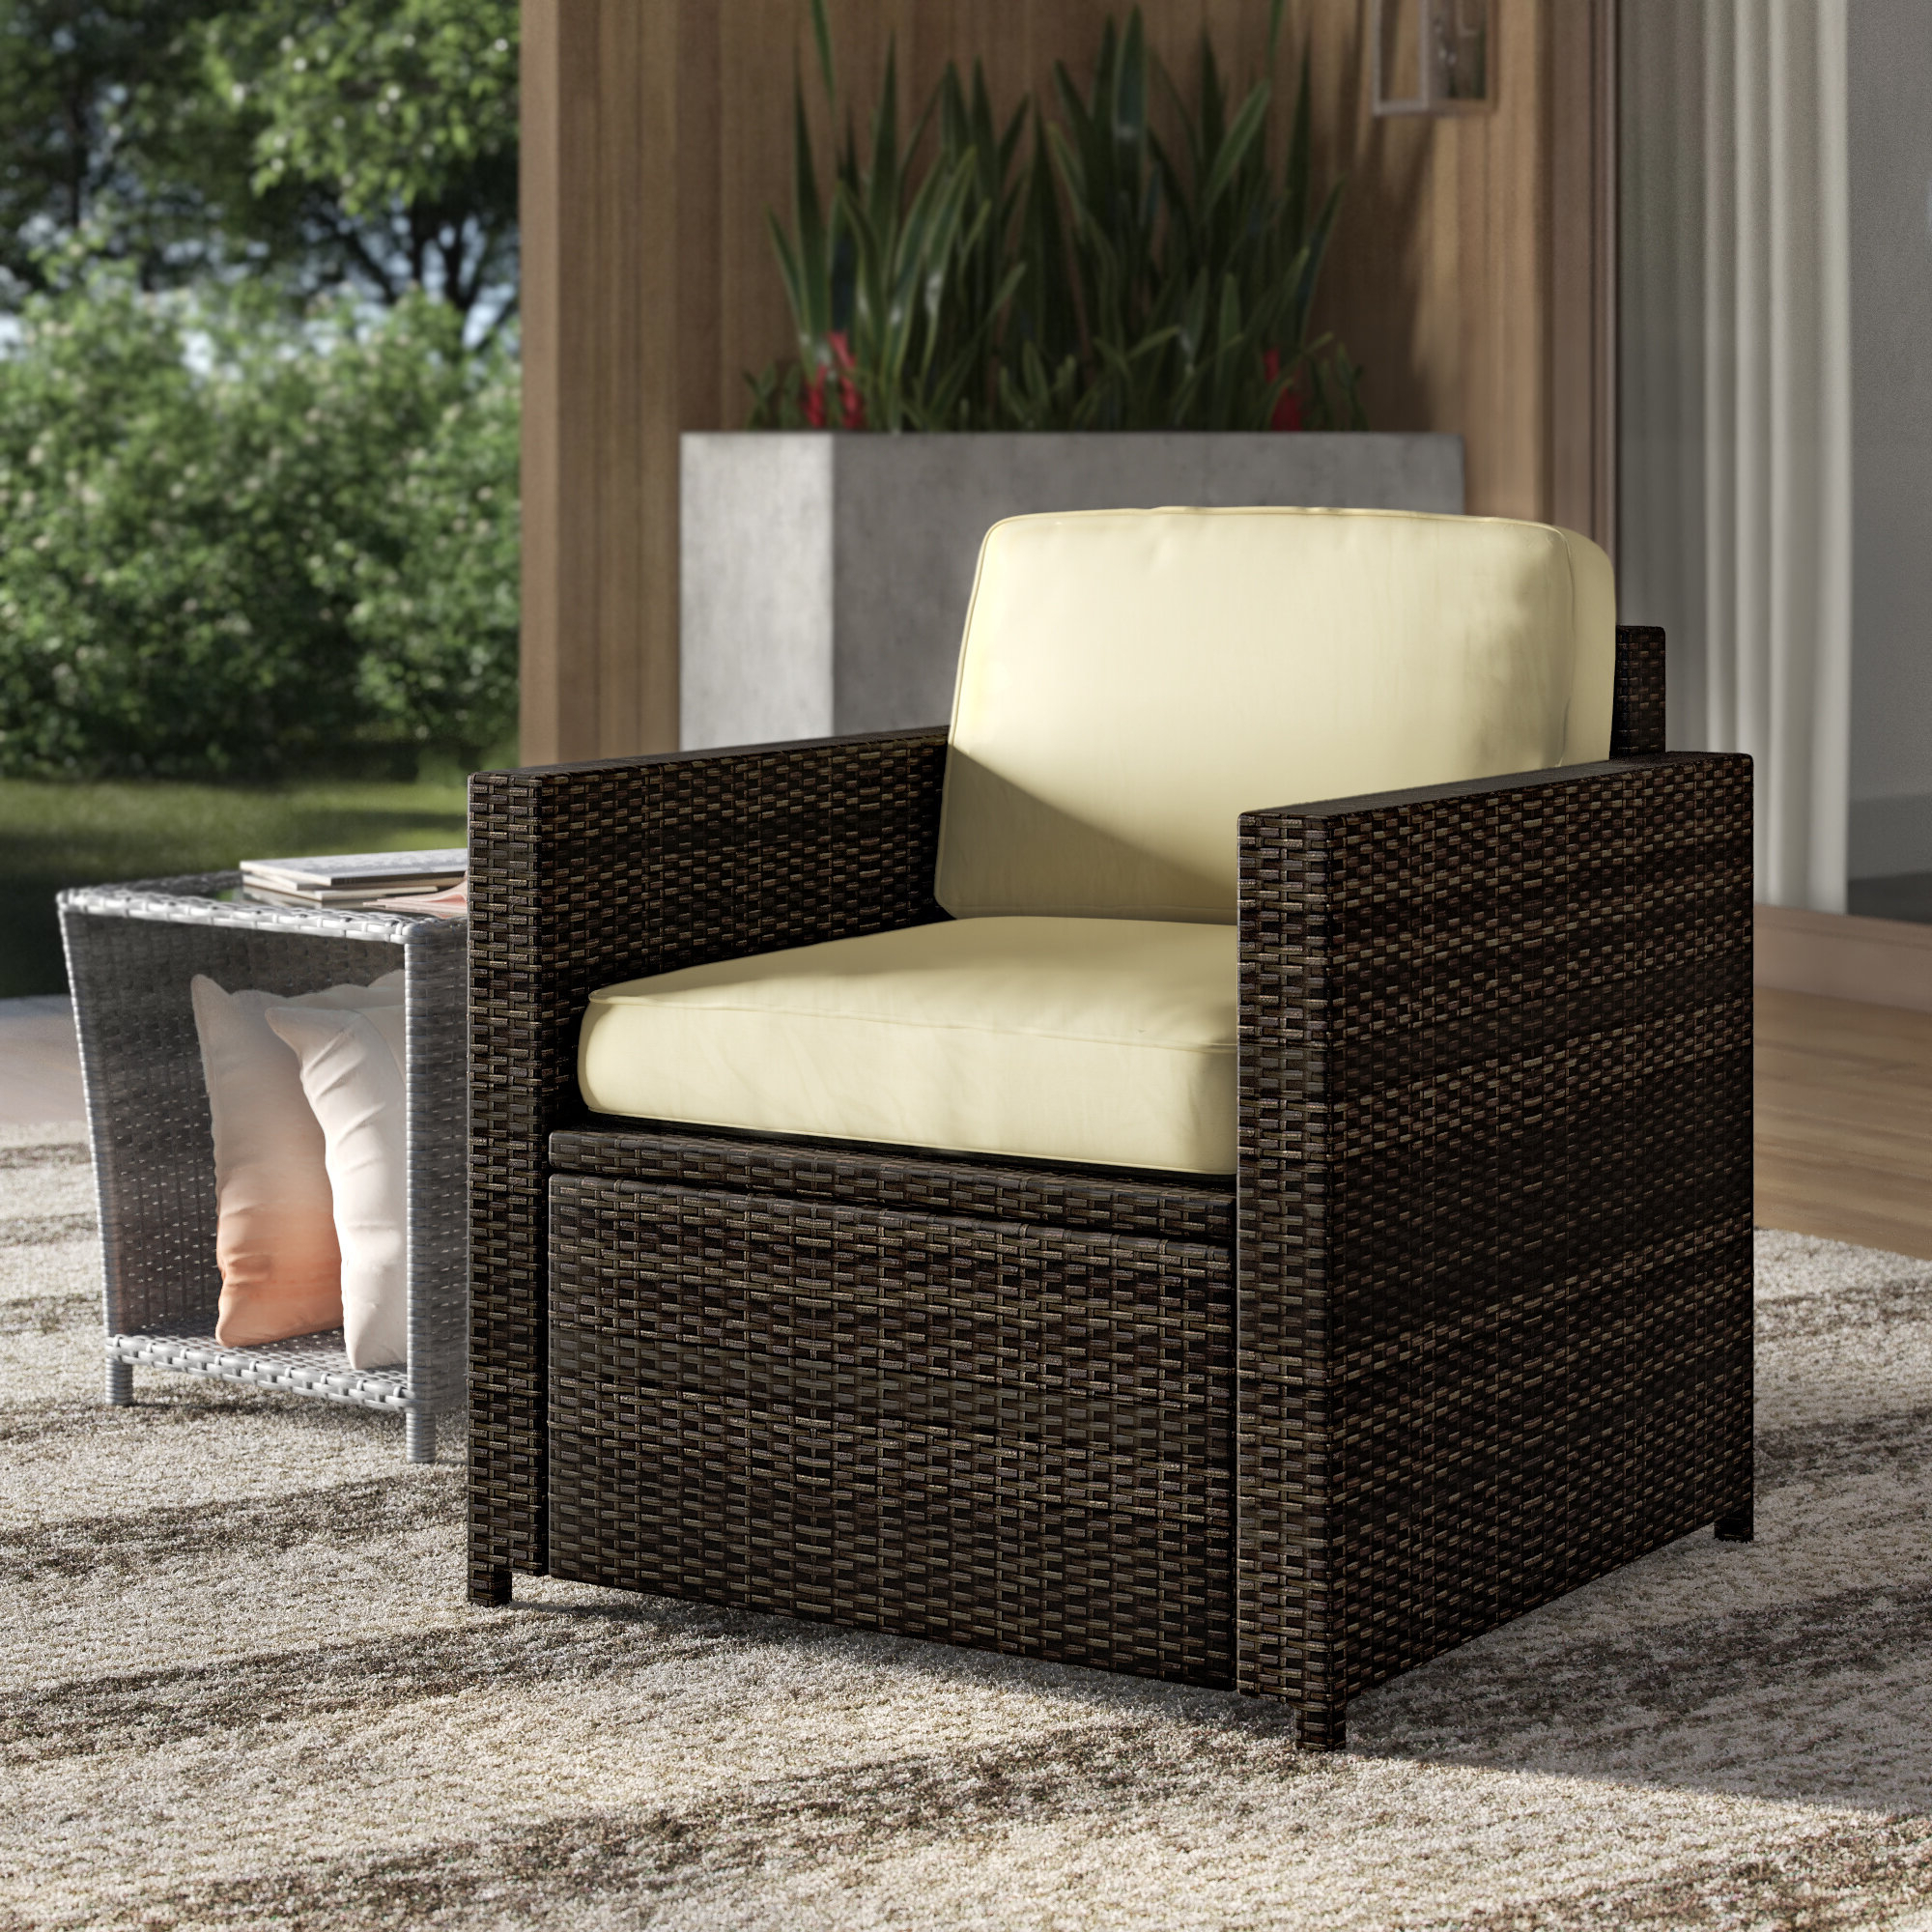 Most Current Katzer Patio Sofas With Cushions With Mercury Row Belton Outdoor Wicker Deep Seating Patio Chair (View 14 of 20)